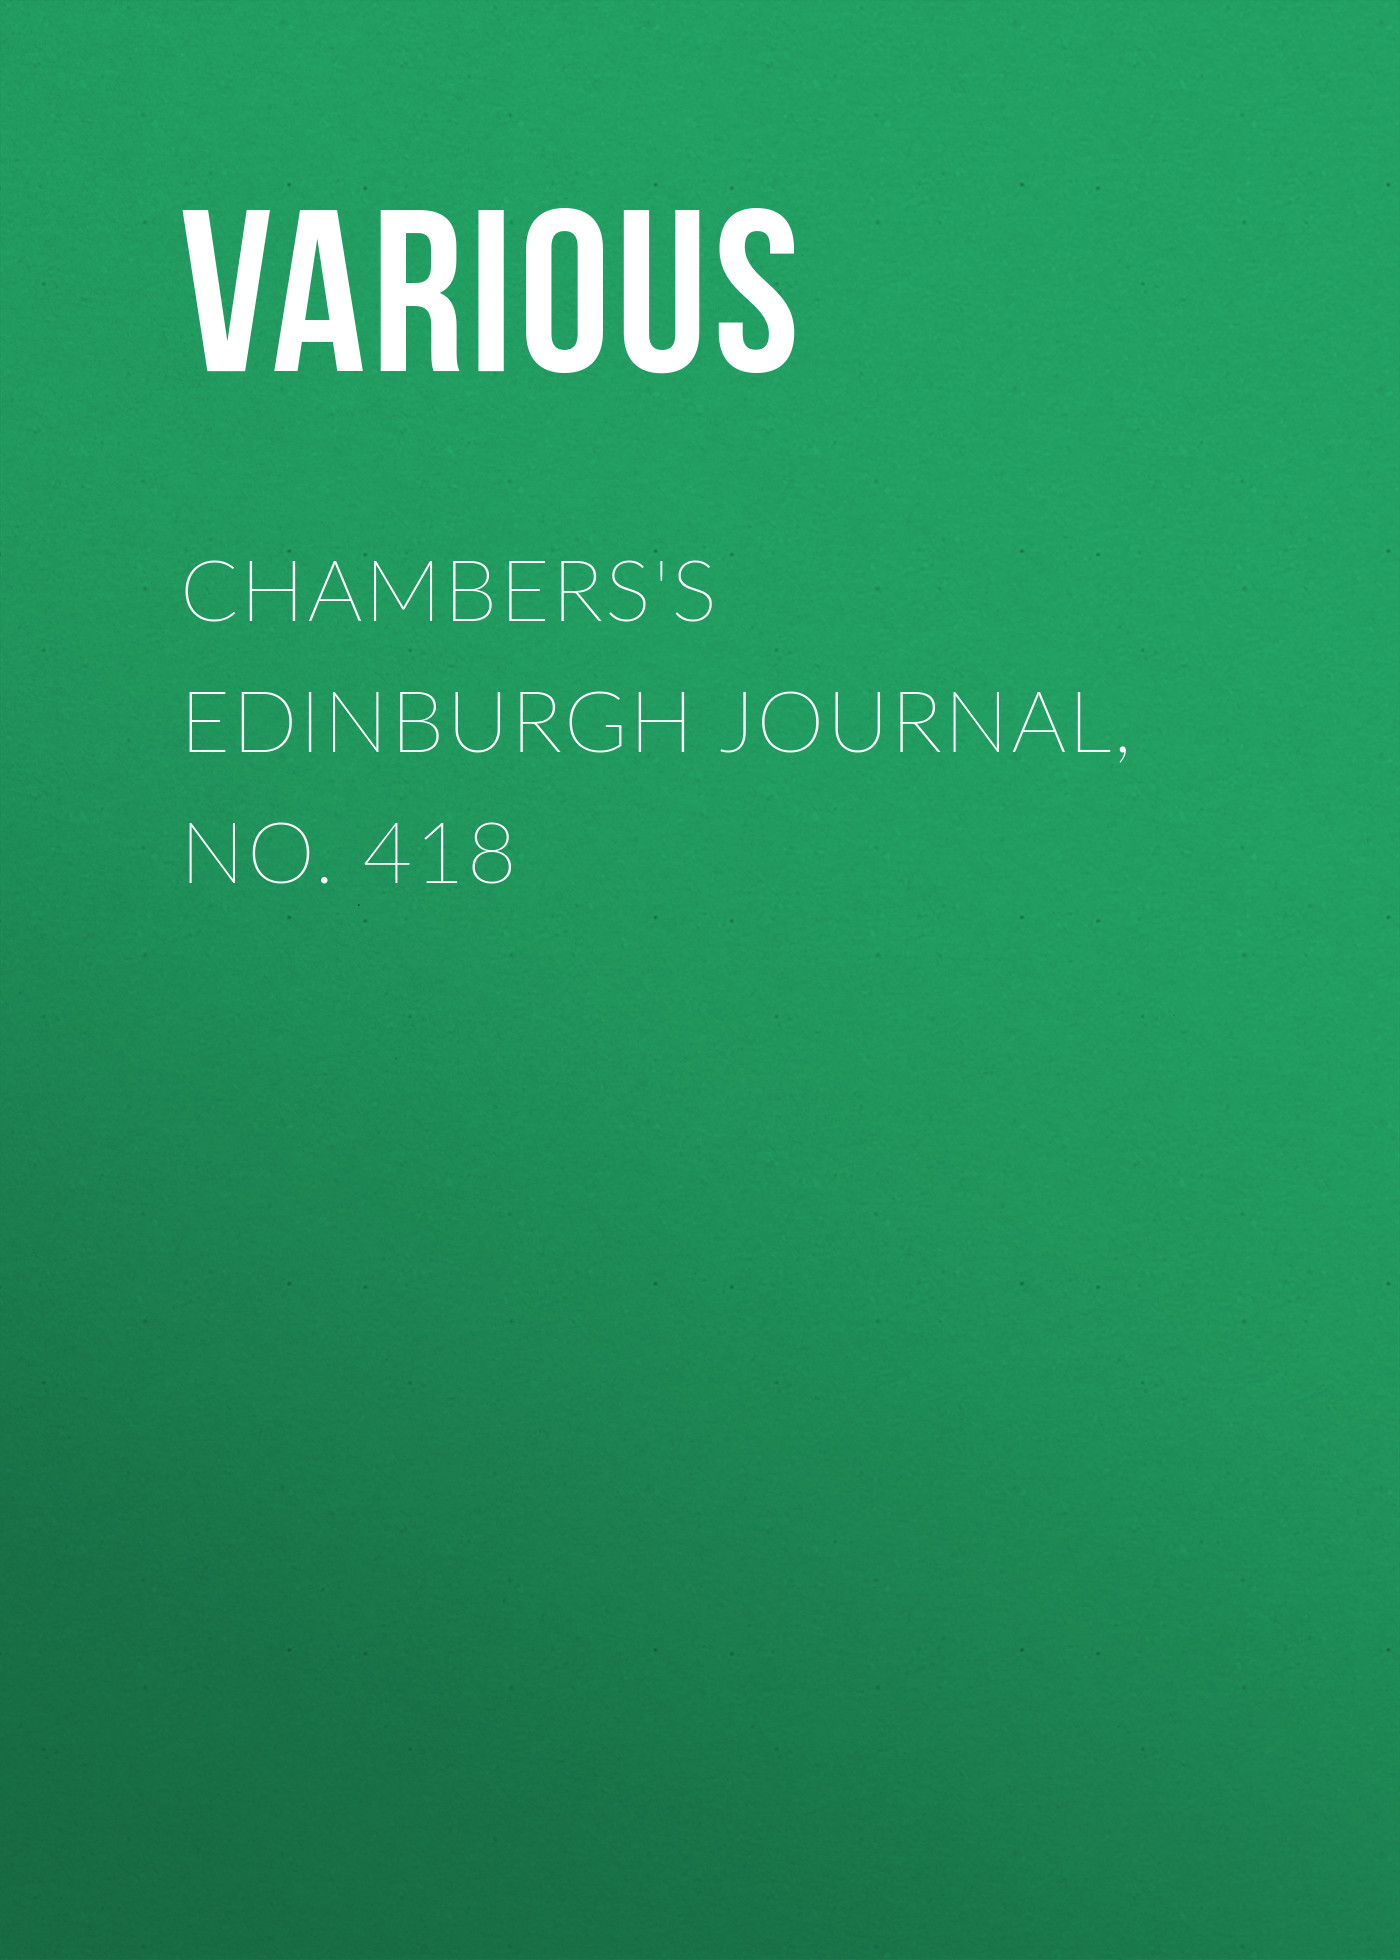 Chambers's Edinburgh Journal, No. 418